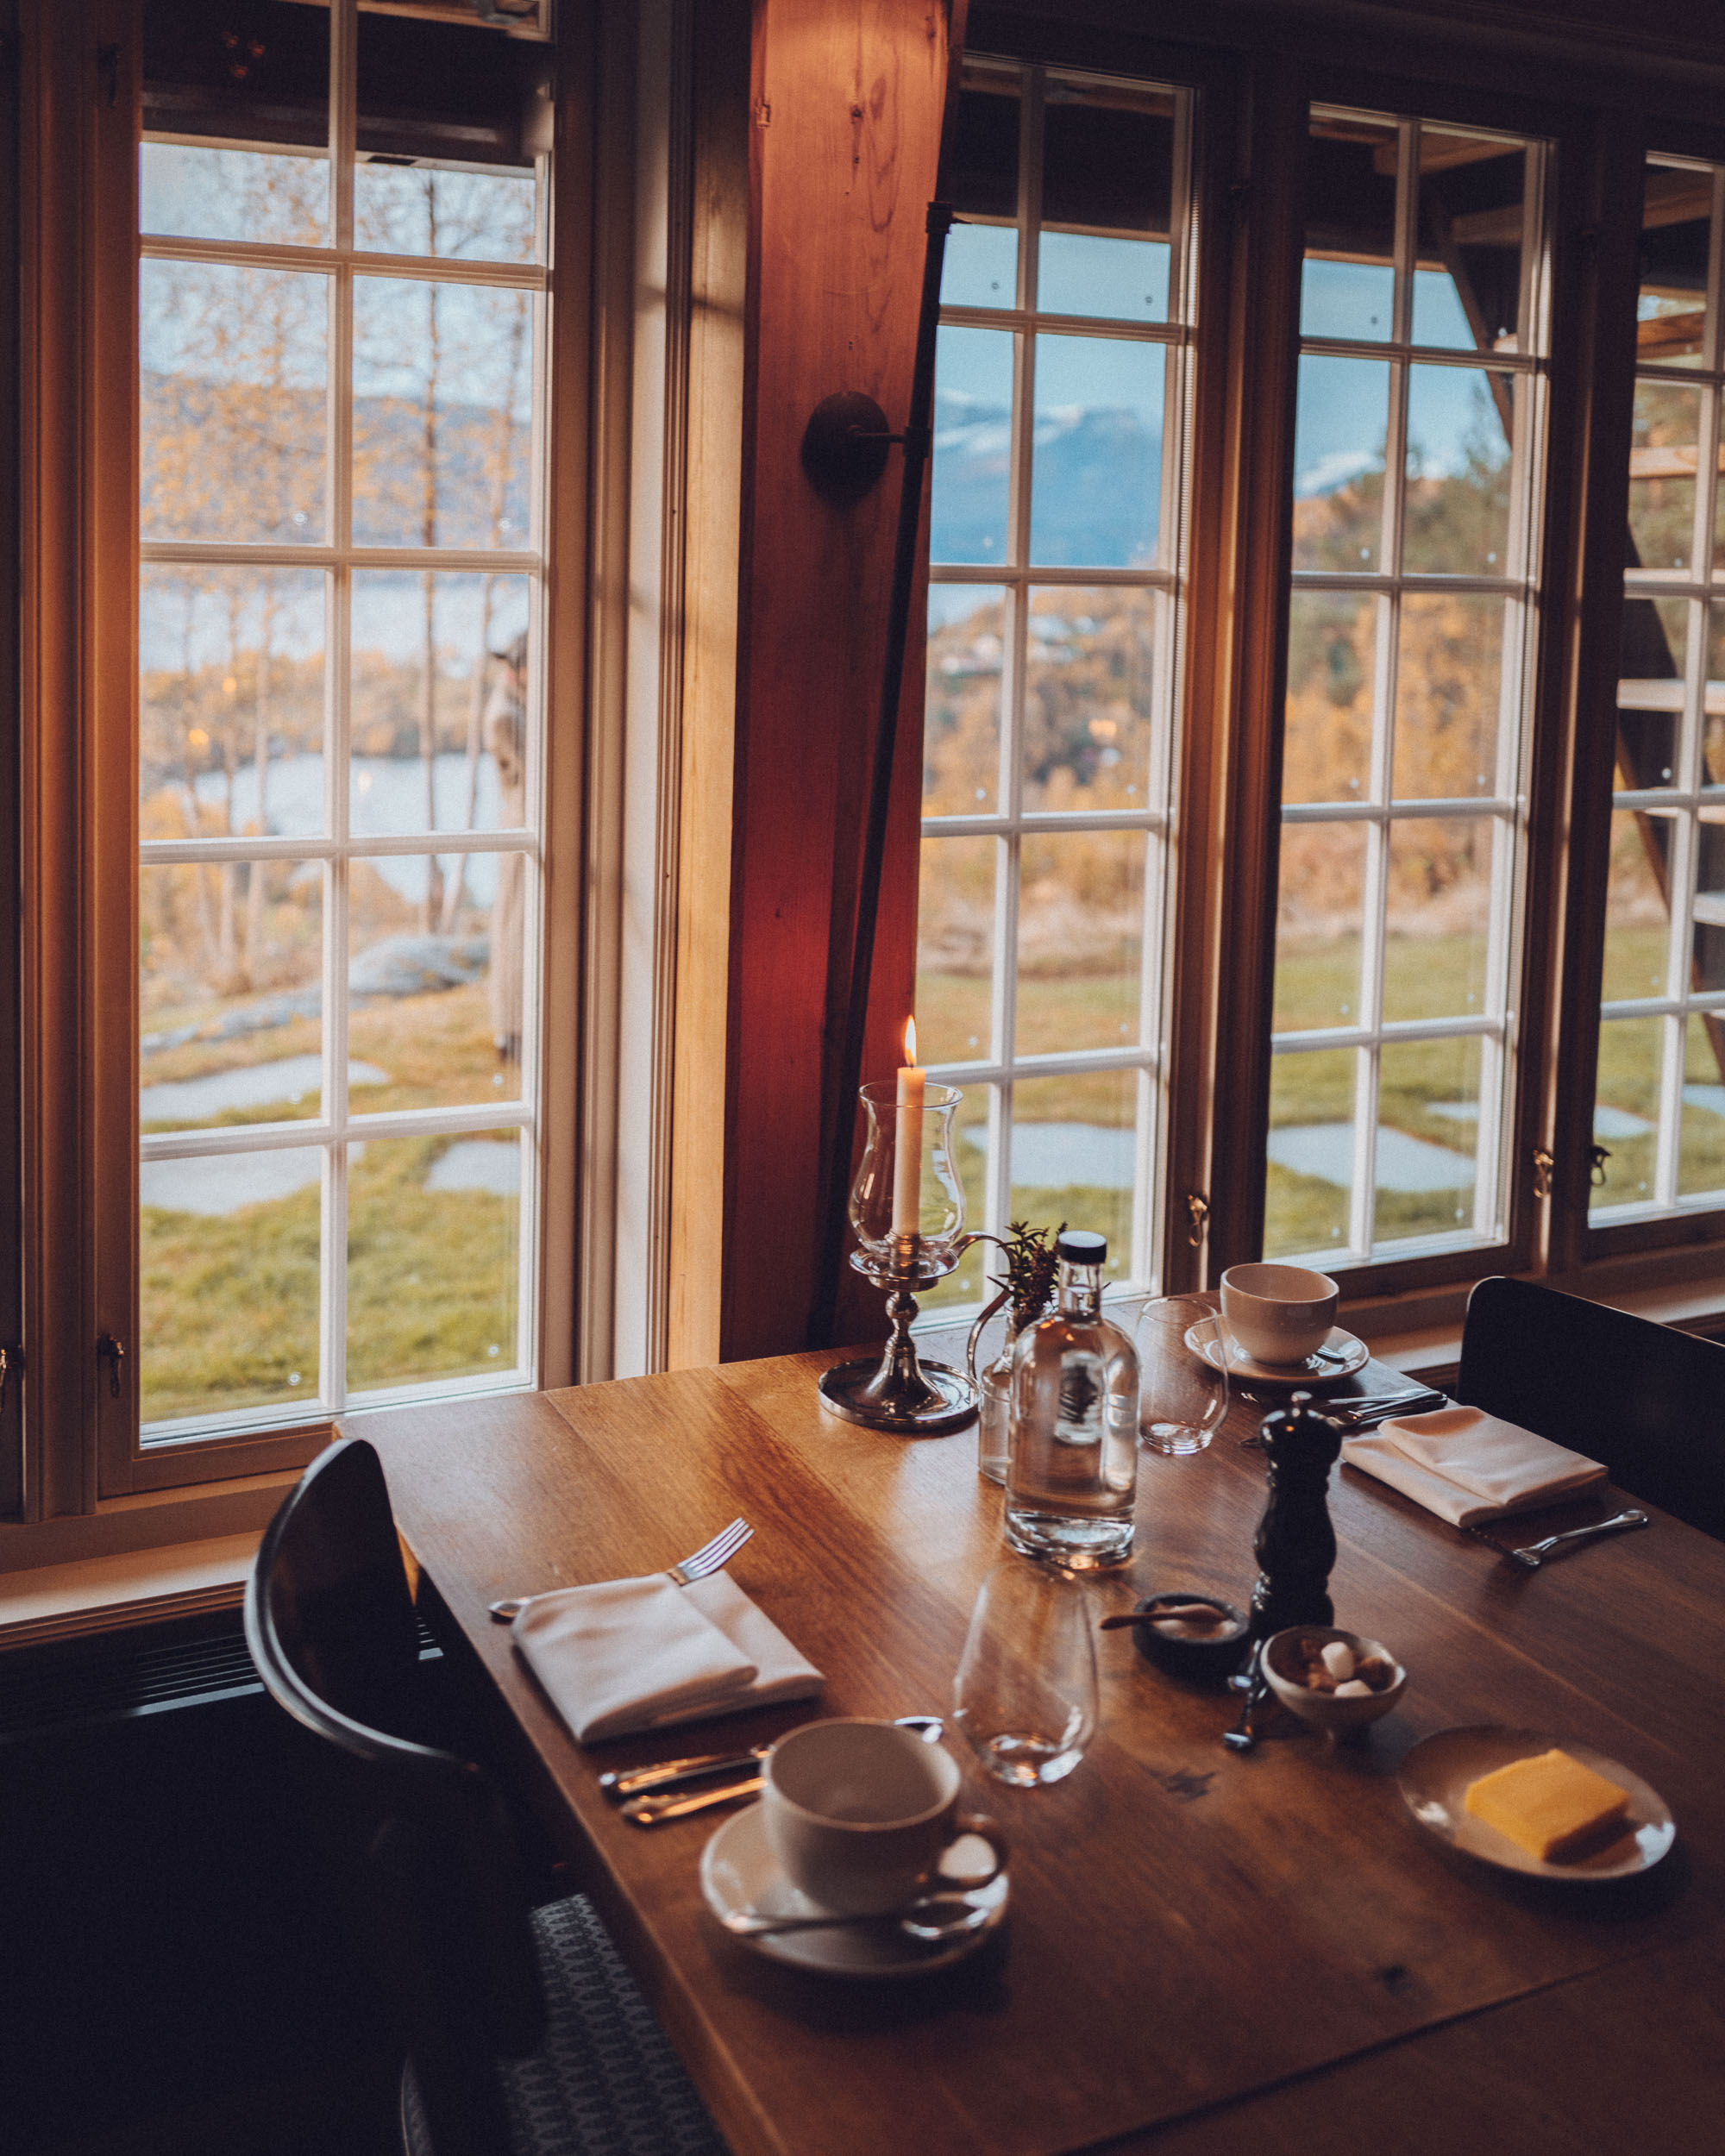 Storfjord Hotel in Alesund Norway - A Small Luxury Hotels Property